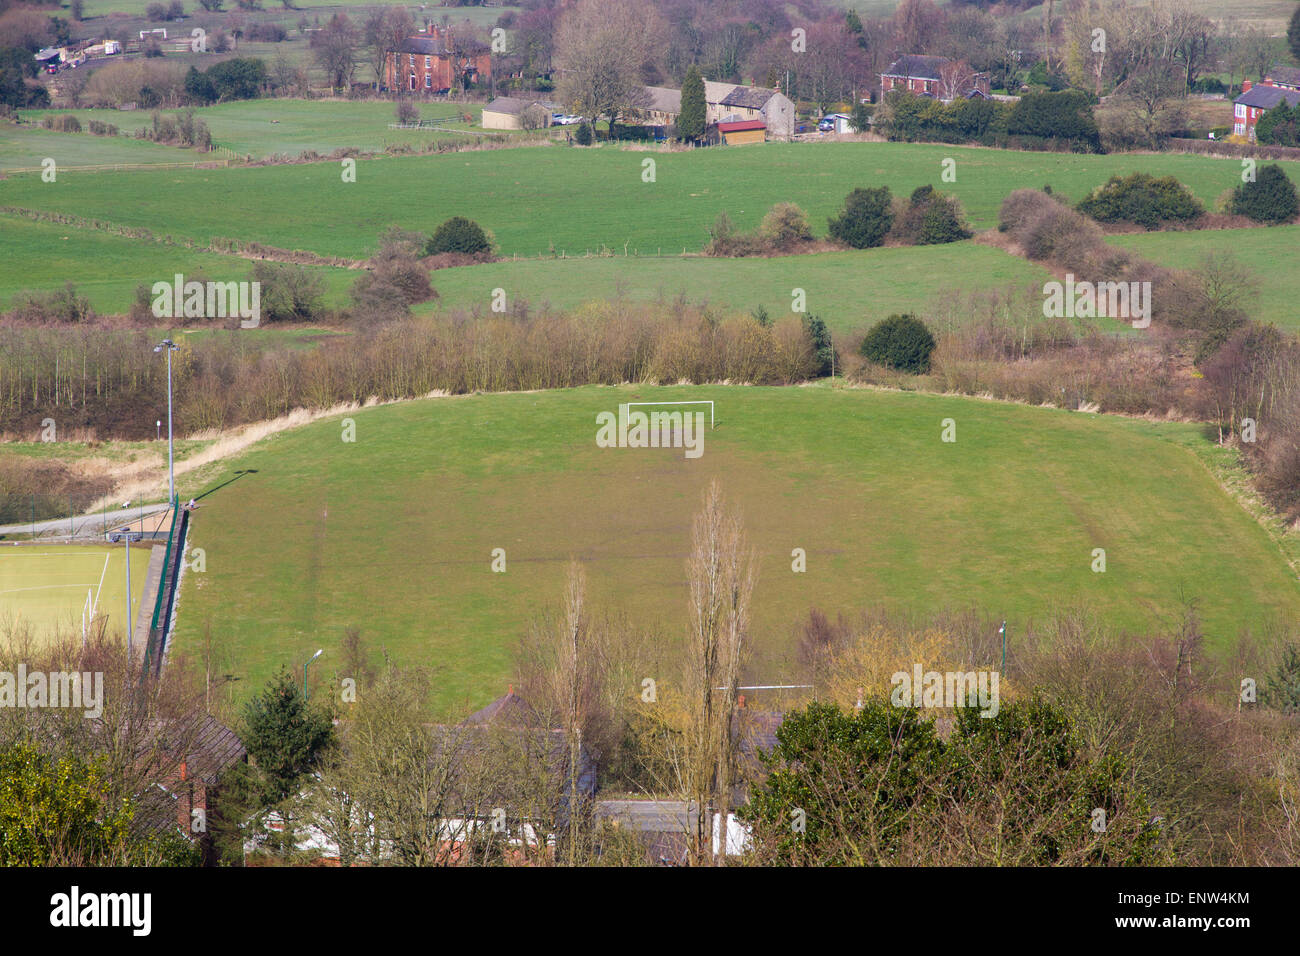 Overlooking an amateur football pitch in Greater Manchester - Stock Image